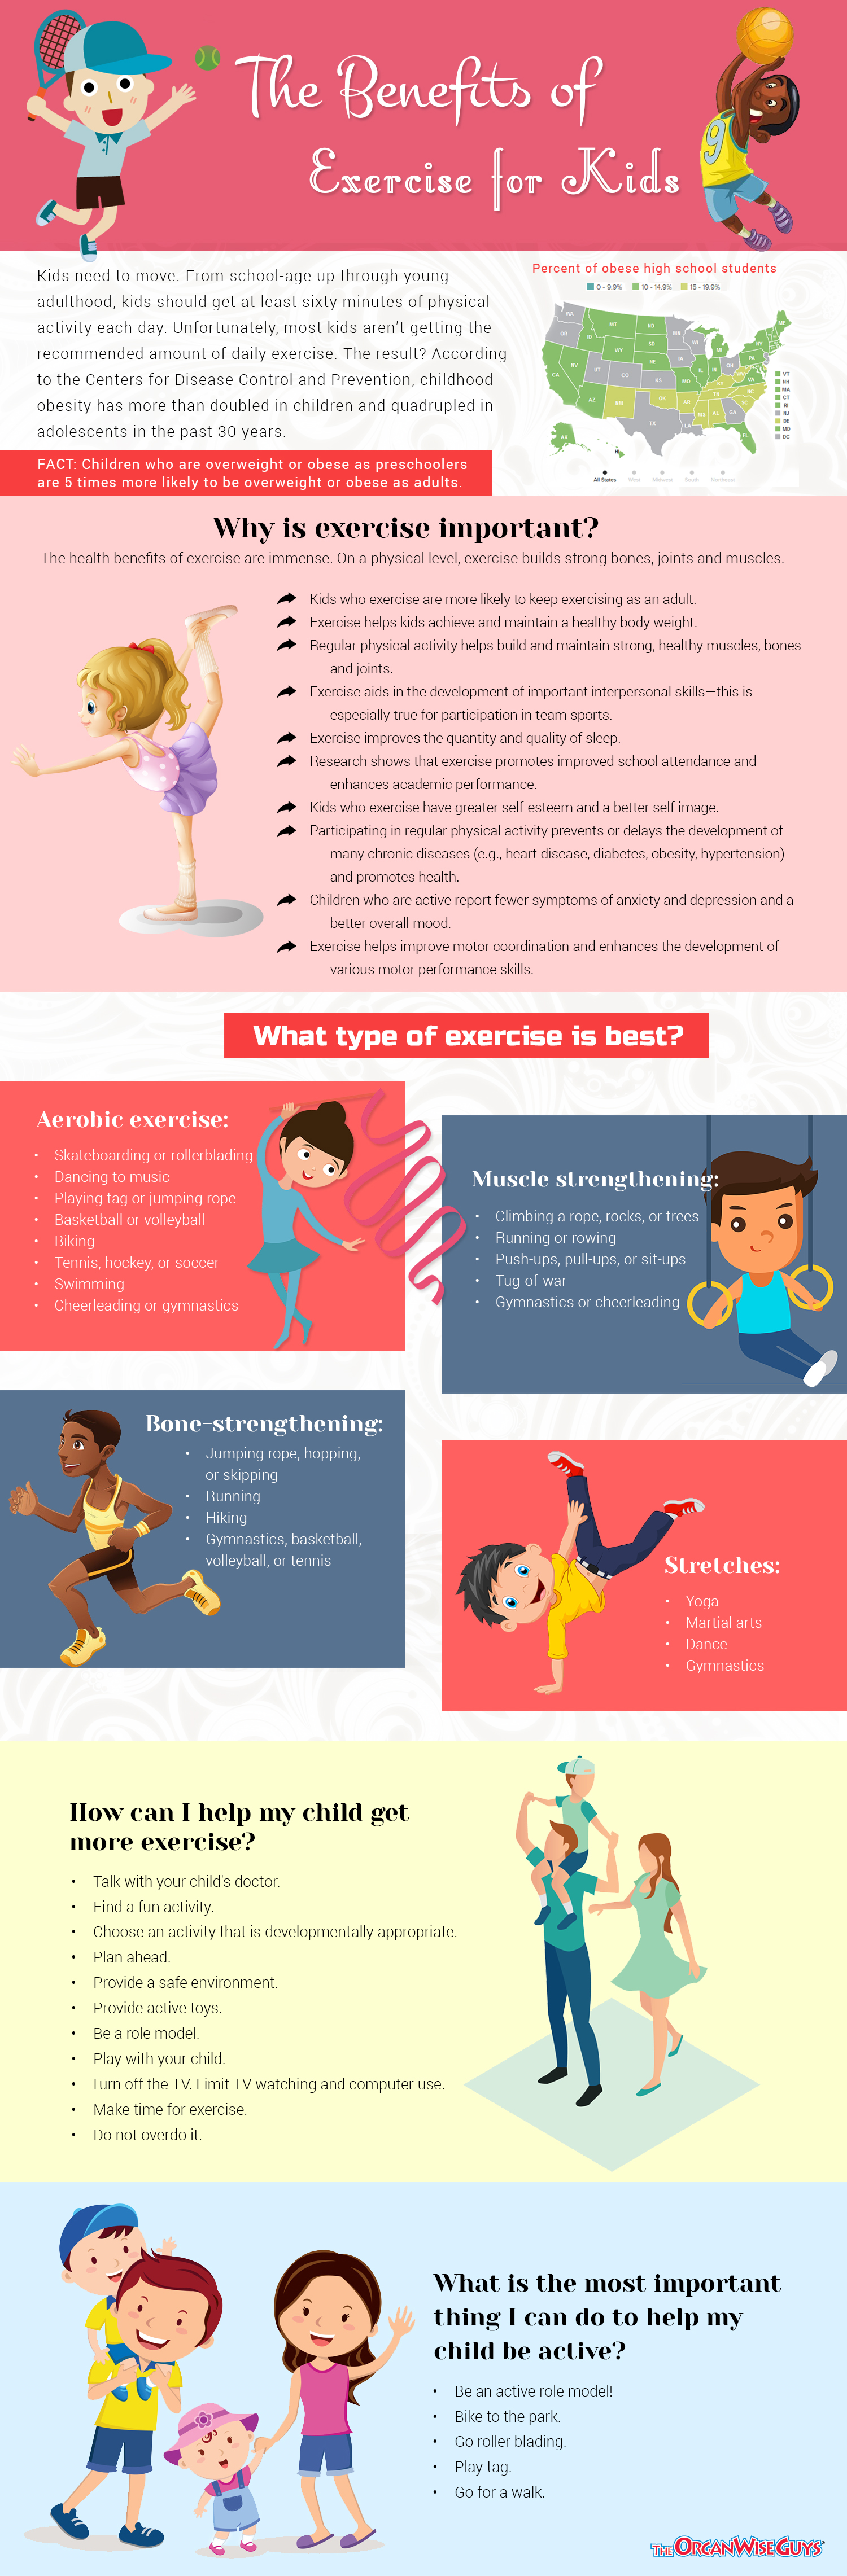 Benefits of Exercise for Kids